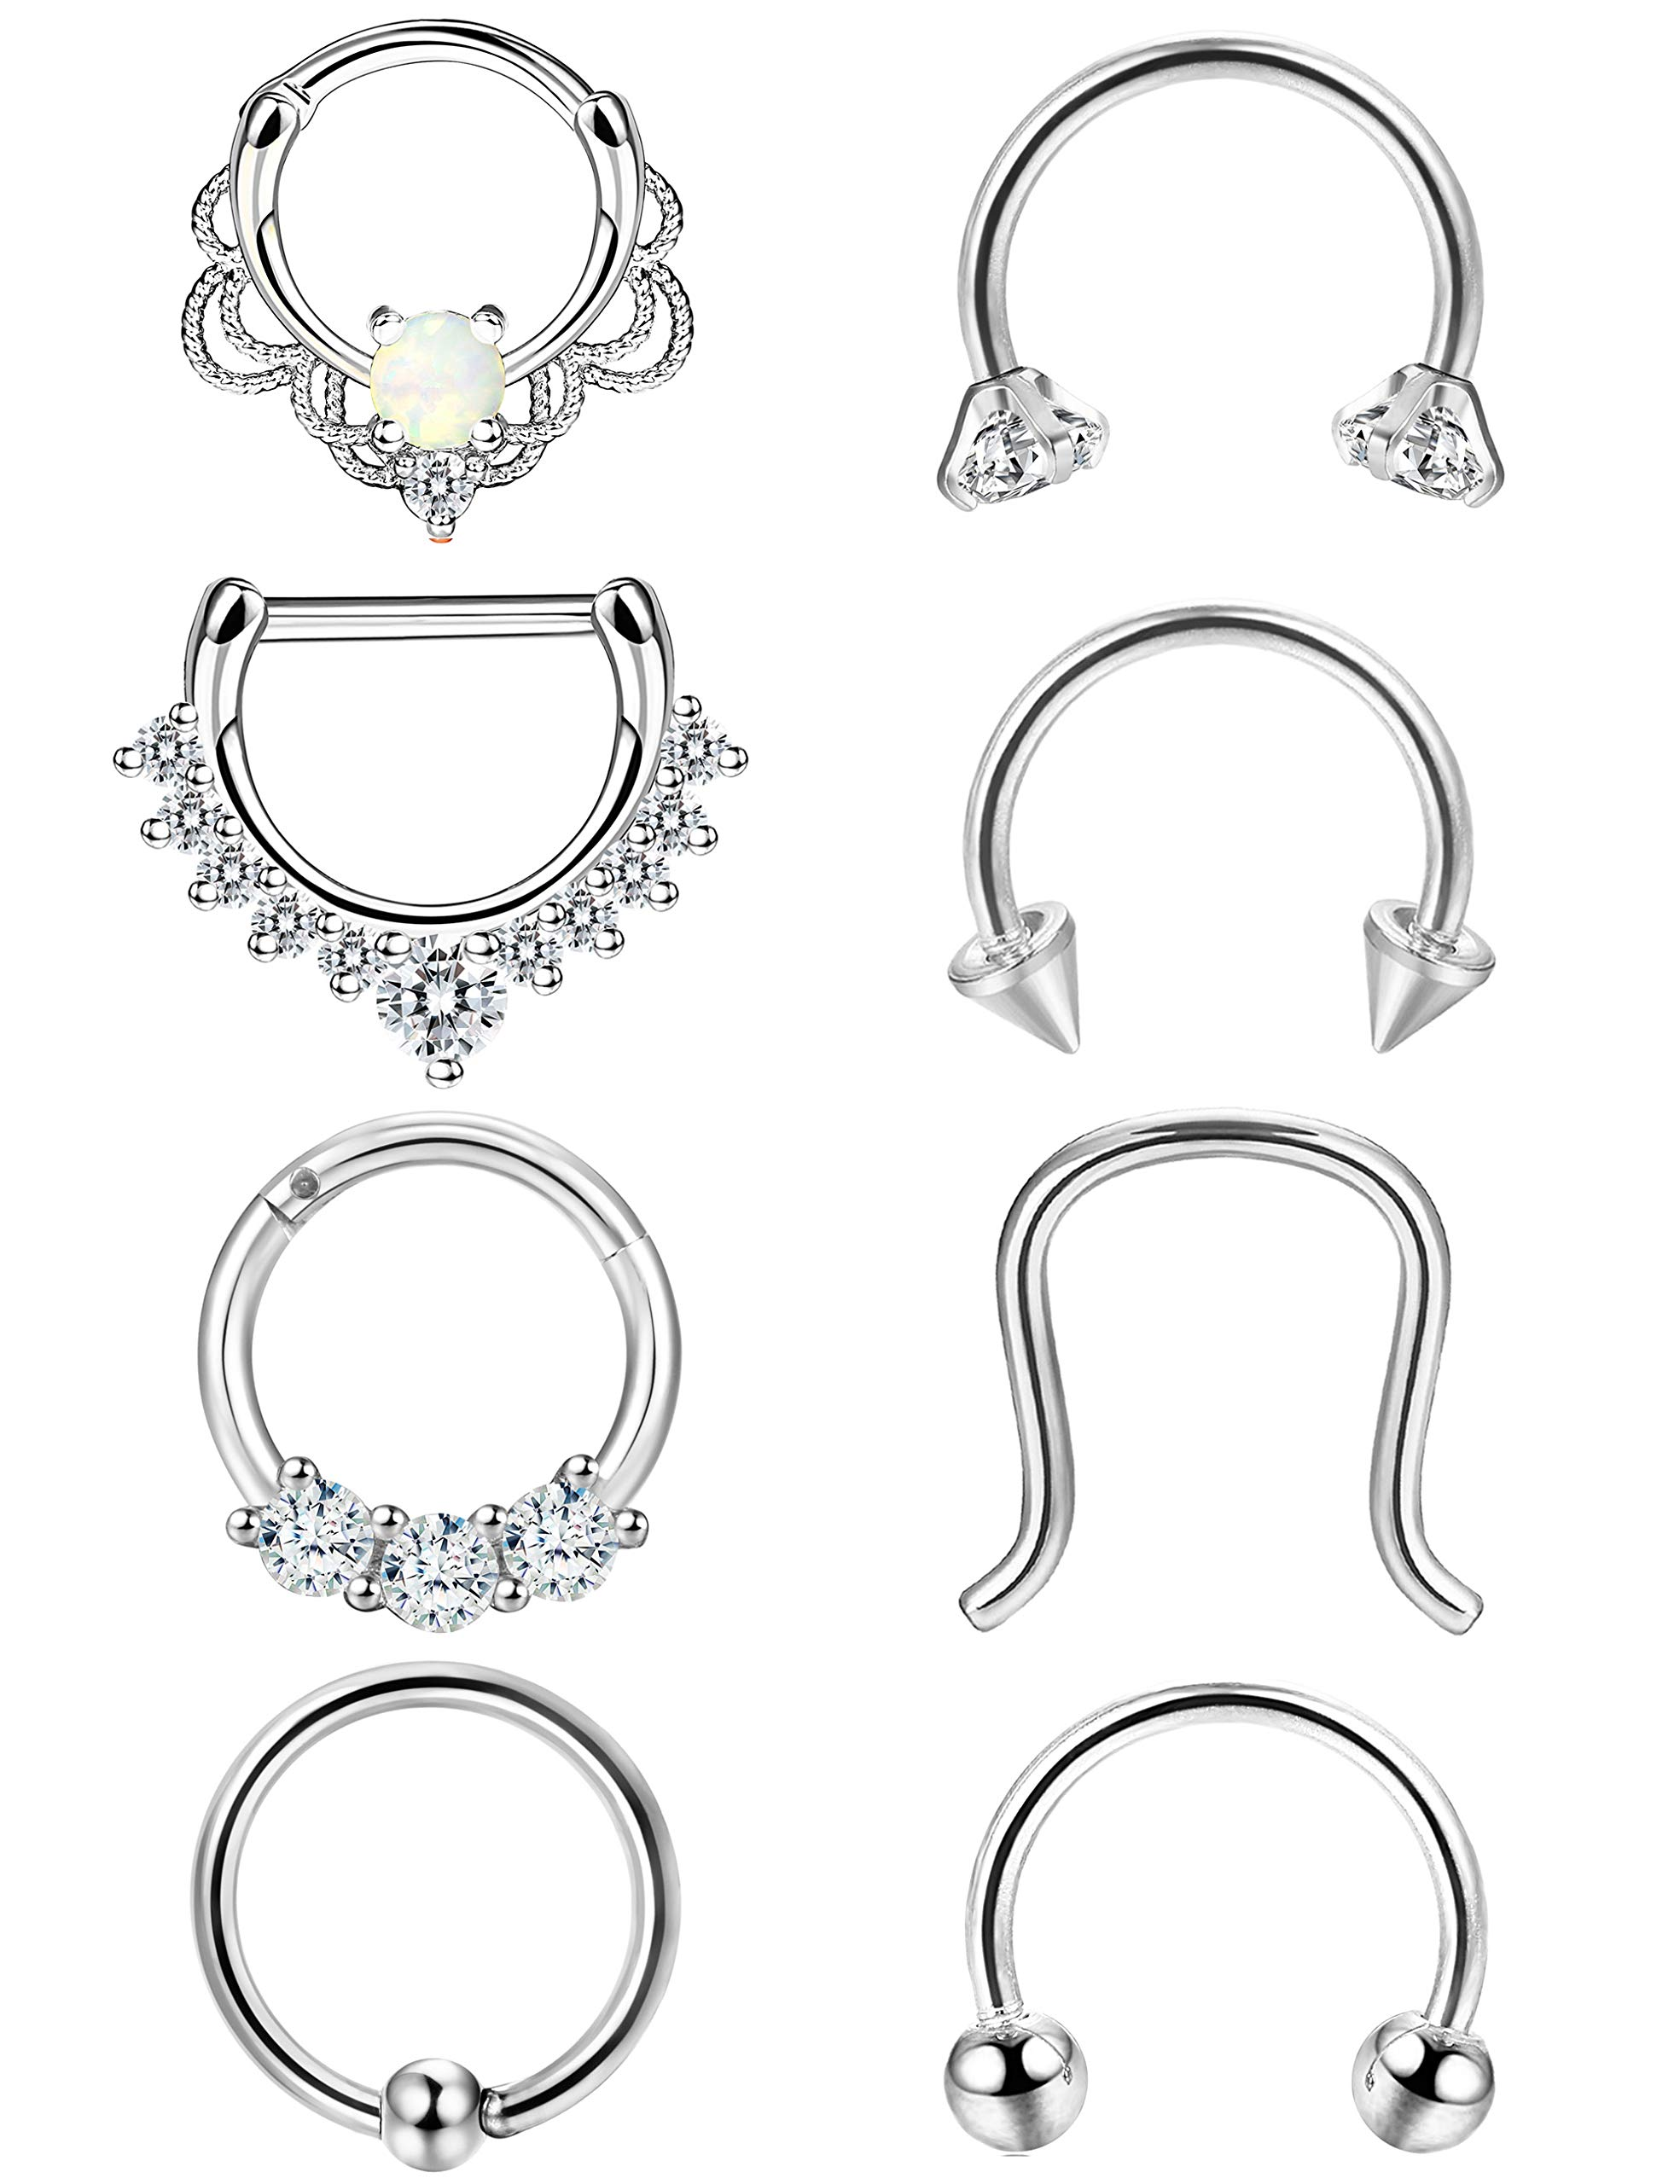 ORAZIO 8PCS 16G 316L Stainless Steel Septum Hoop Nose Ring 8MM Horseshoe Rings Daith Piercing Jewelry Silver Tone by ORAZIO